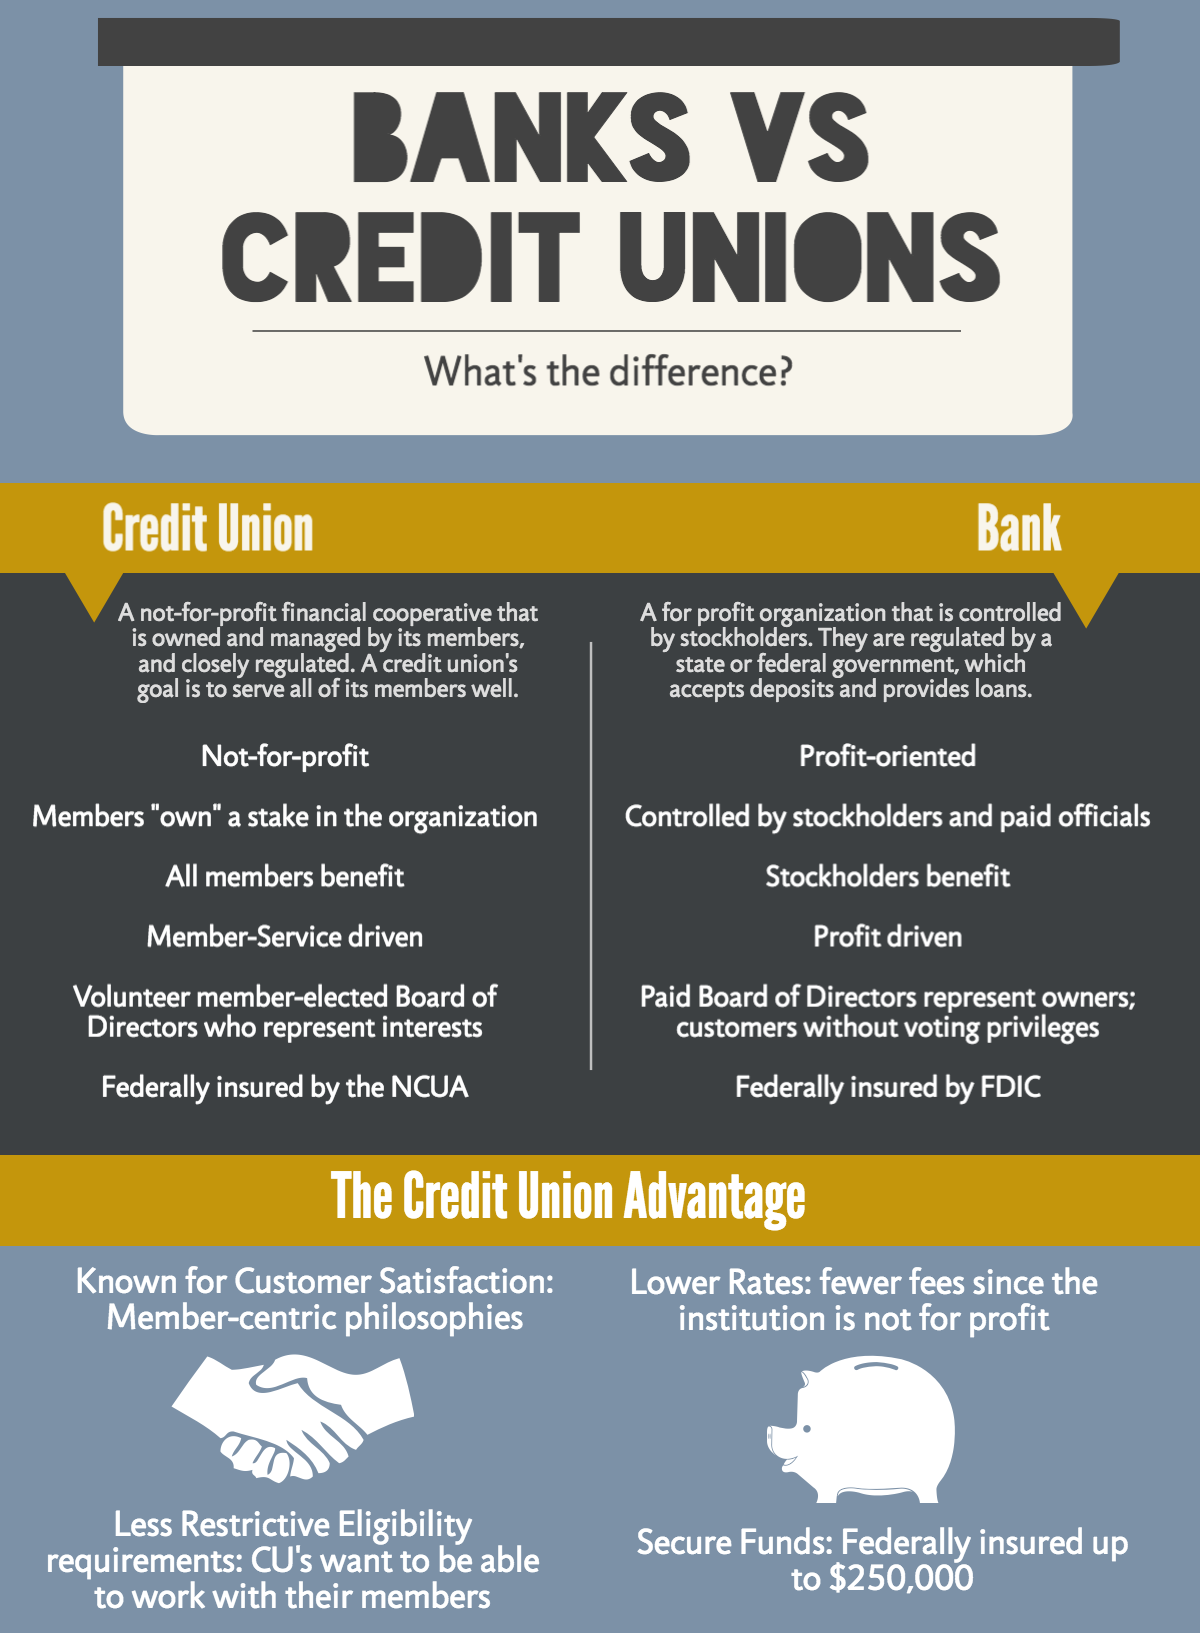 Banks vs. Credit Unions infographic